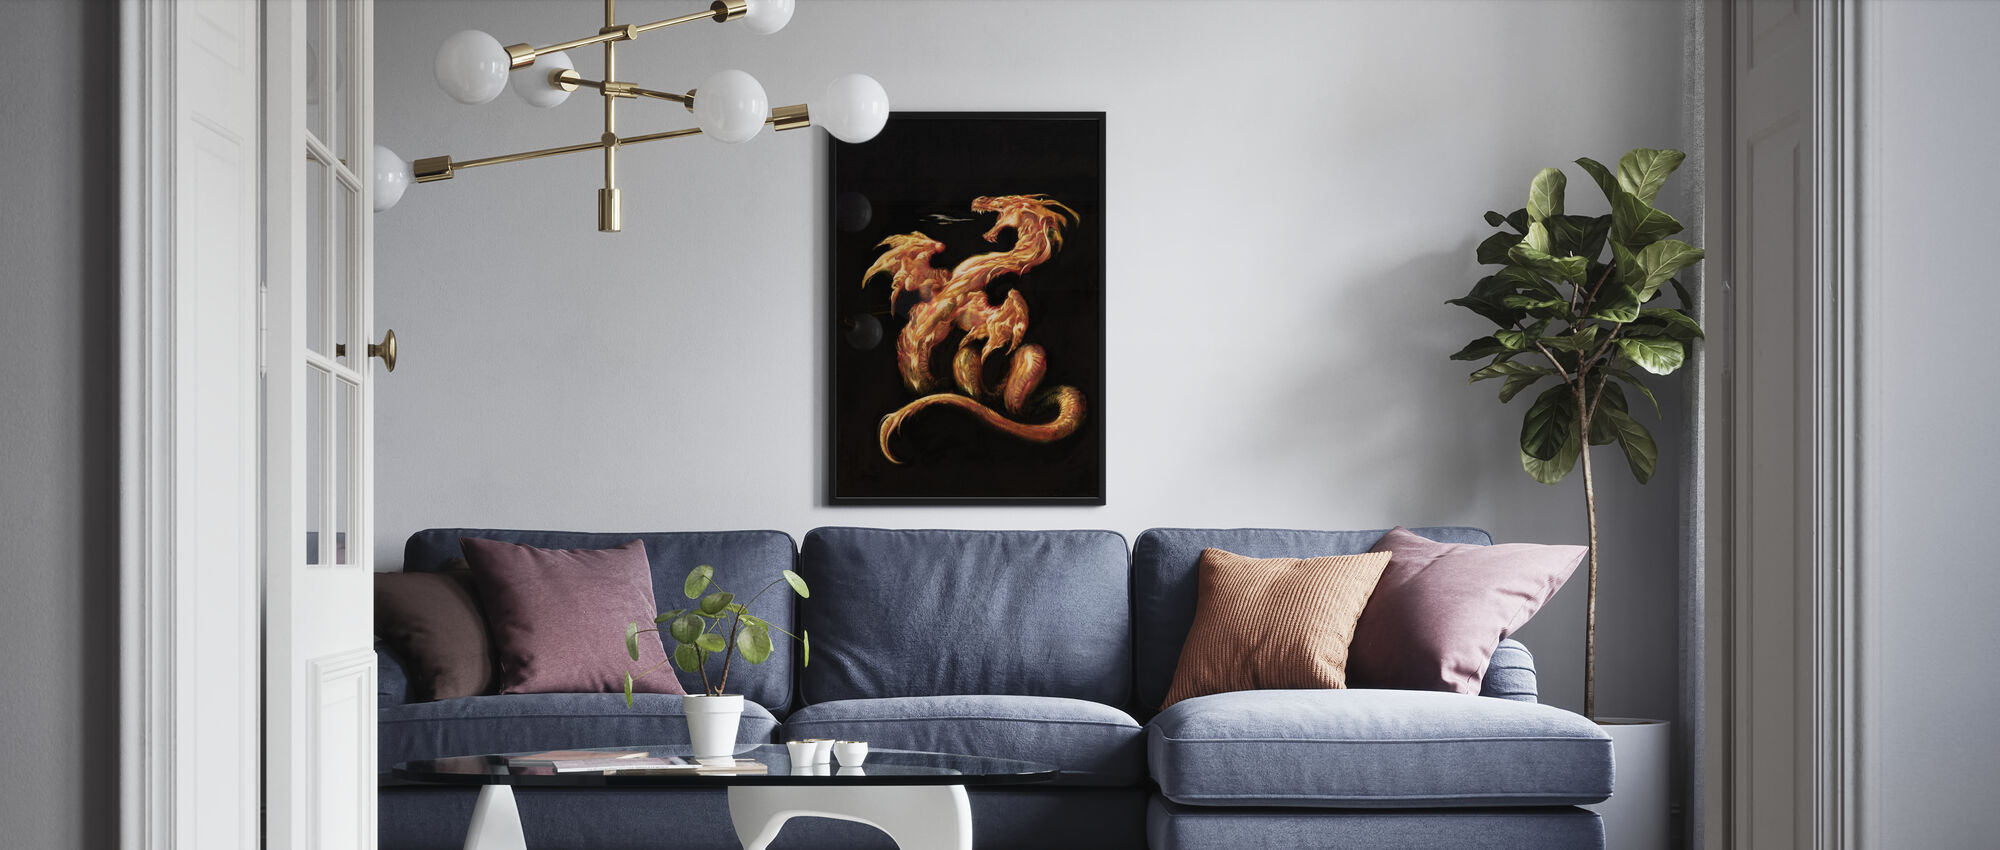 Fire - Poster - Living Room